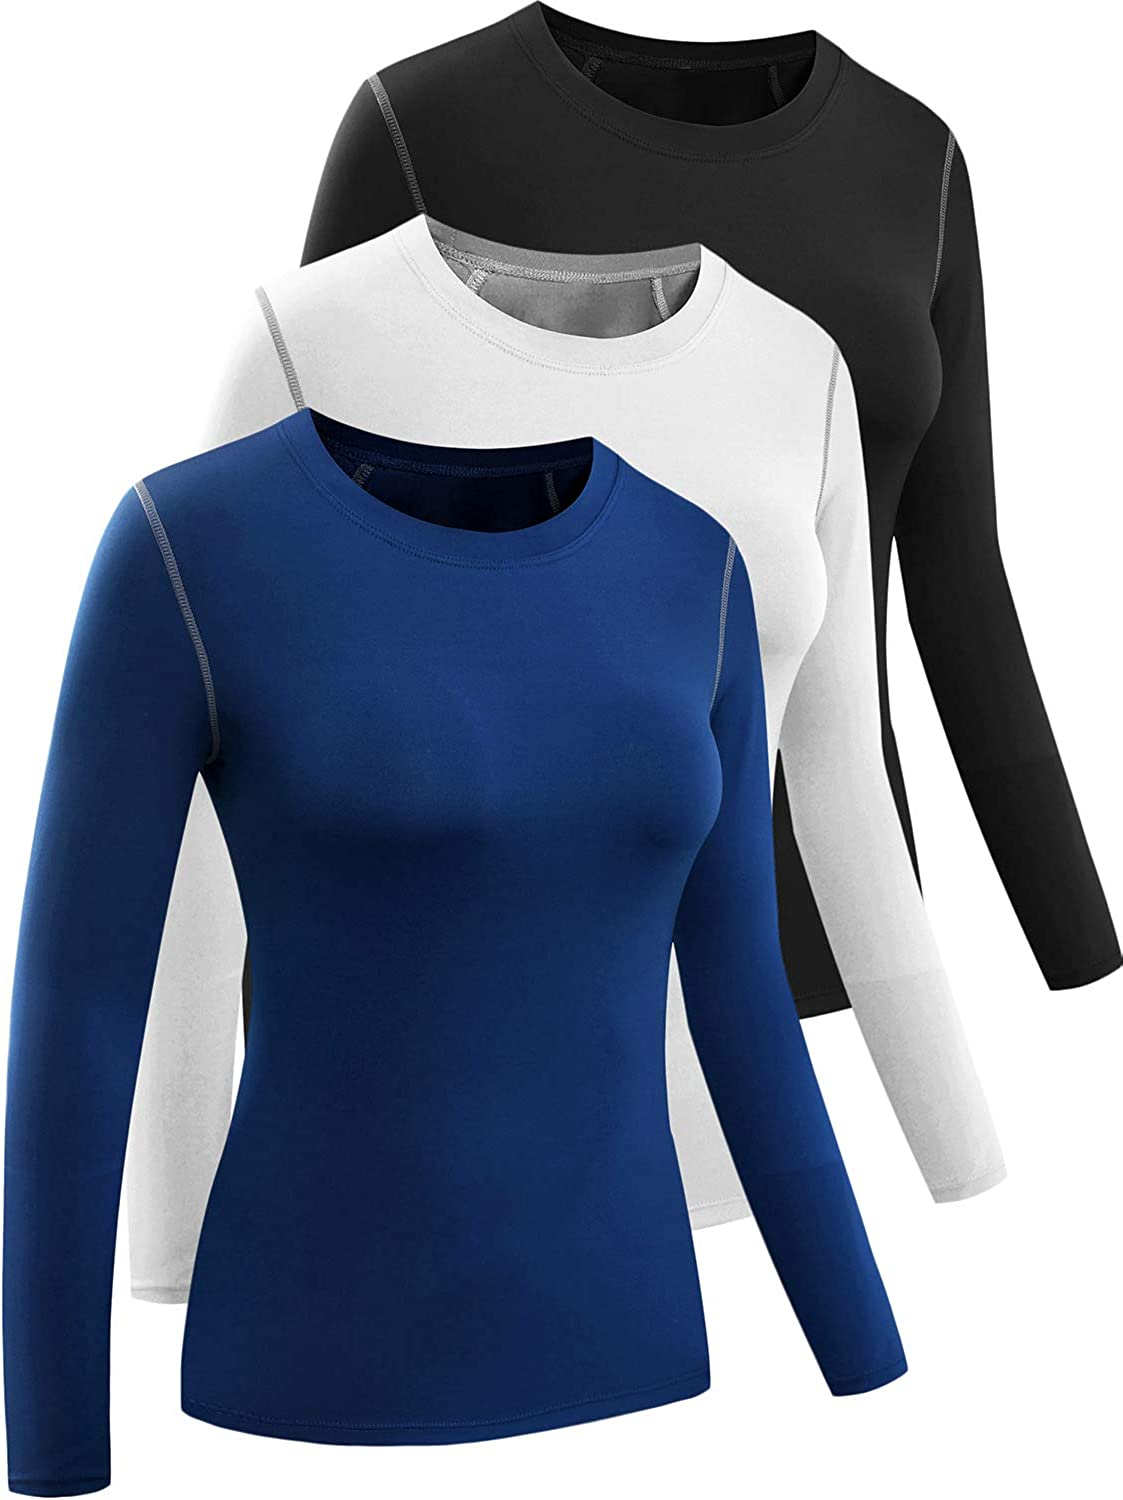 CADMUS Women's 3 Pack Running Compression Sleeve Spring new work one after another low-pricing Long Shirt T